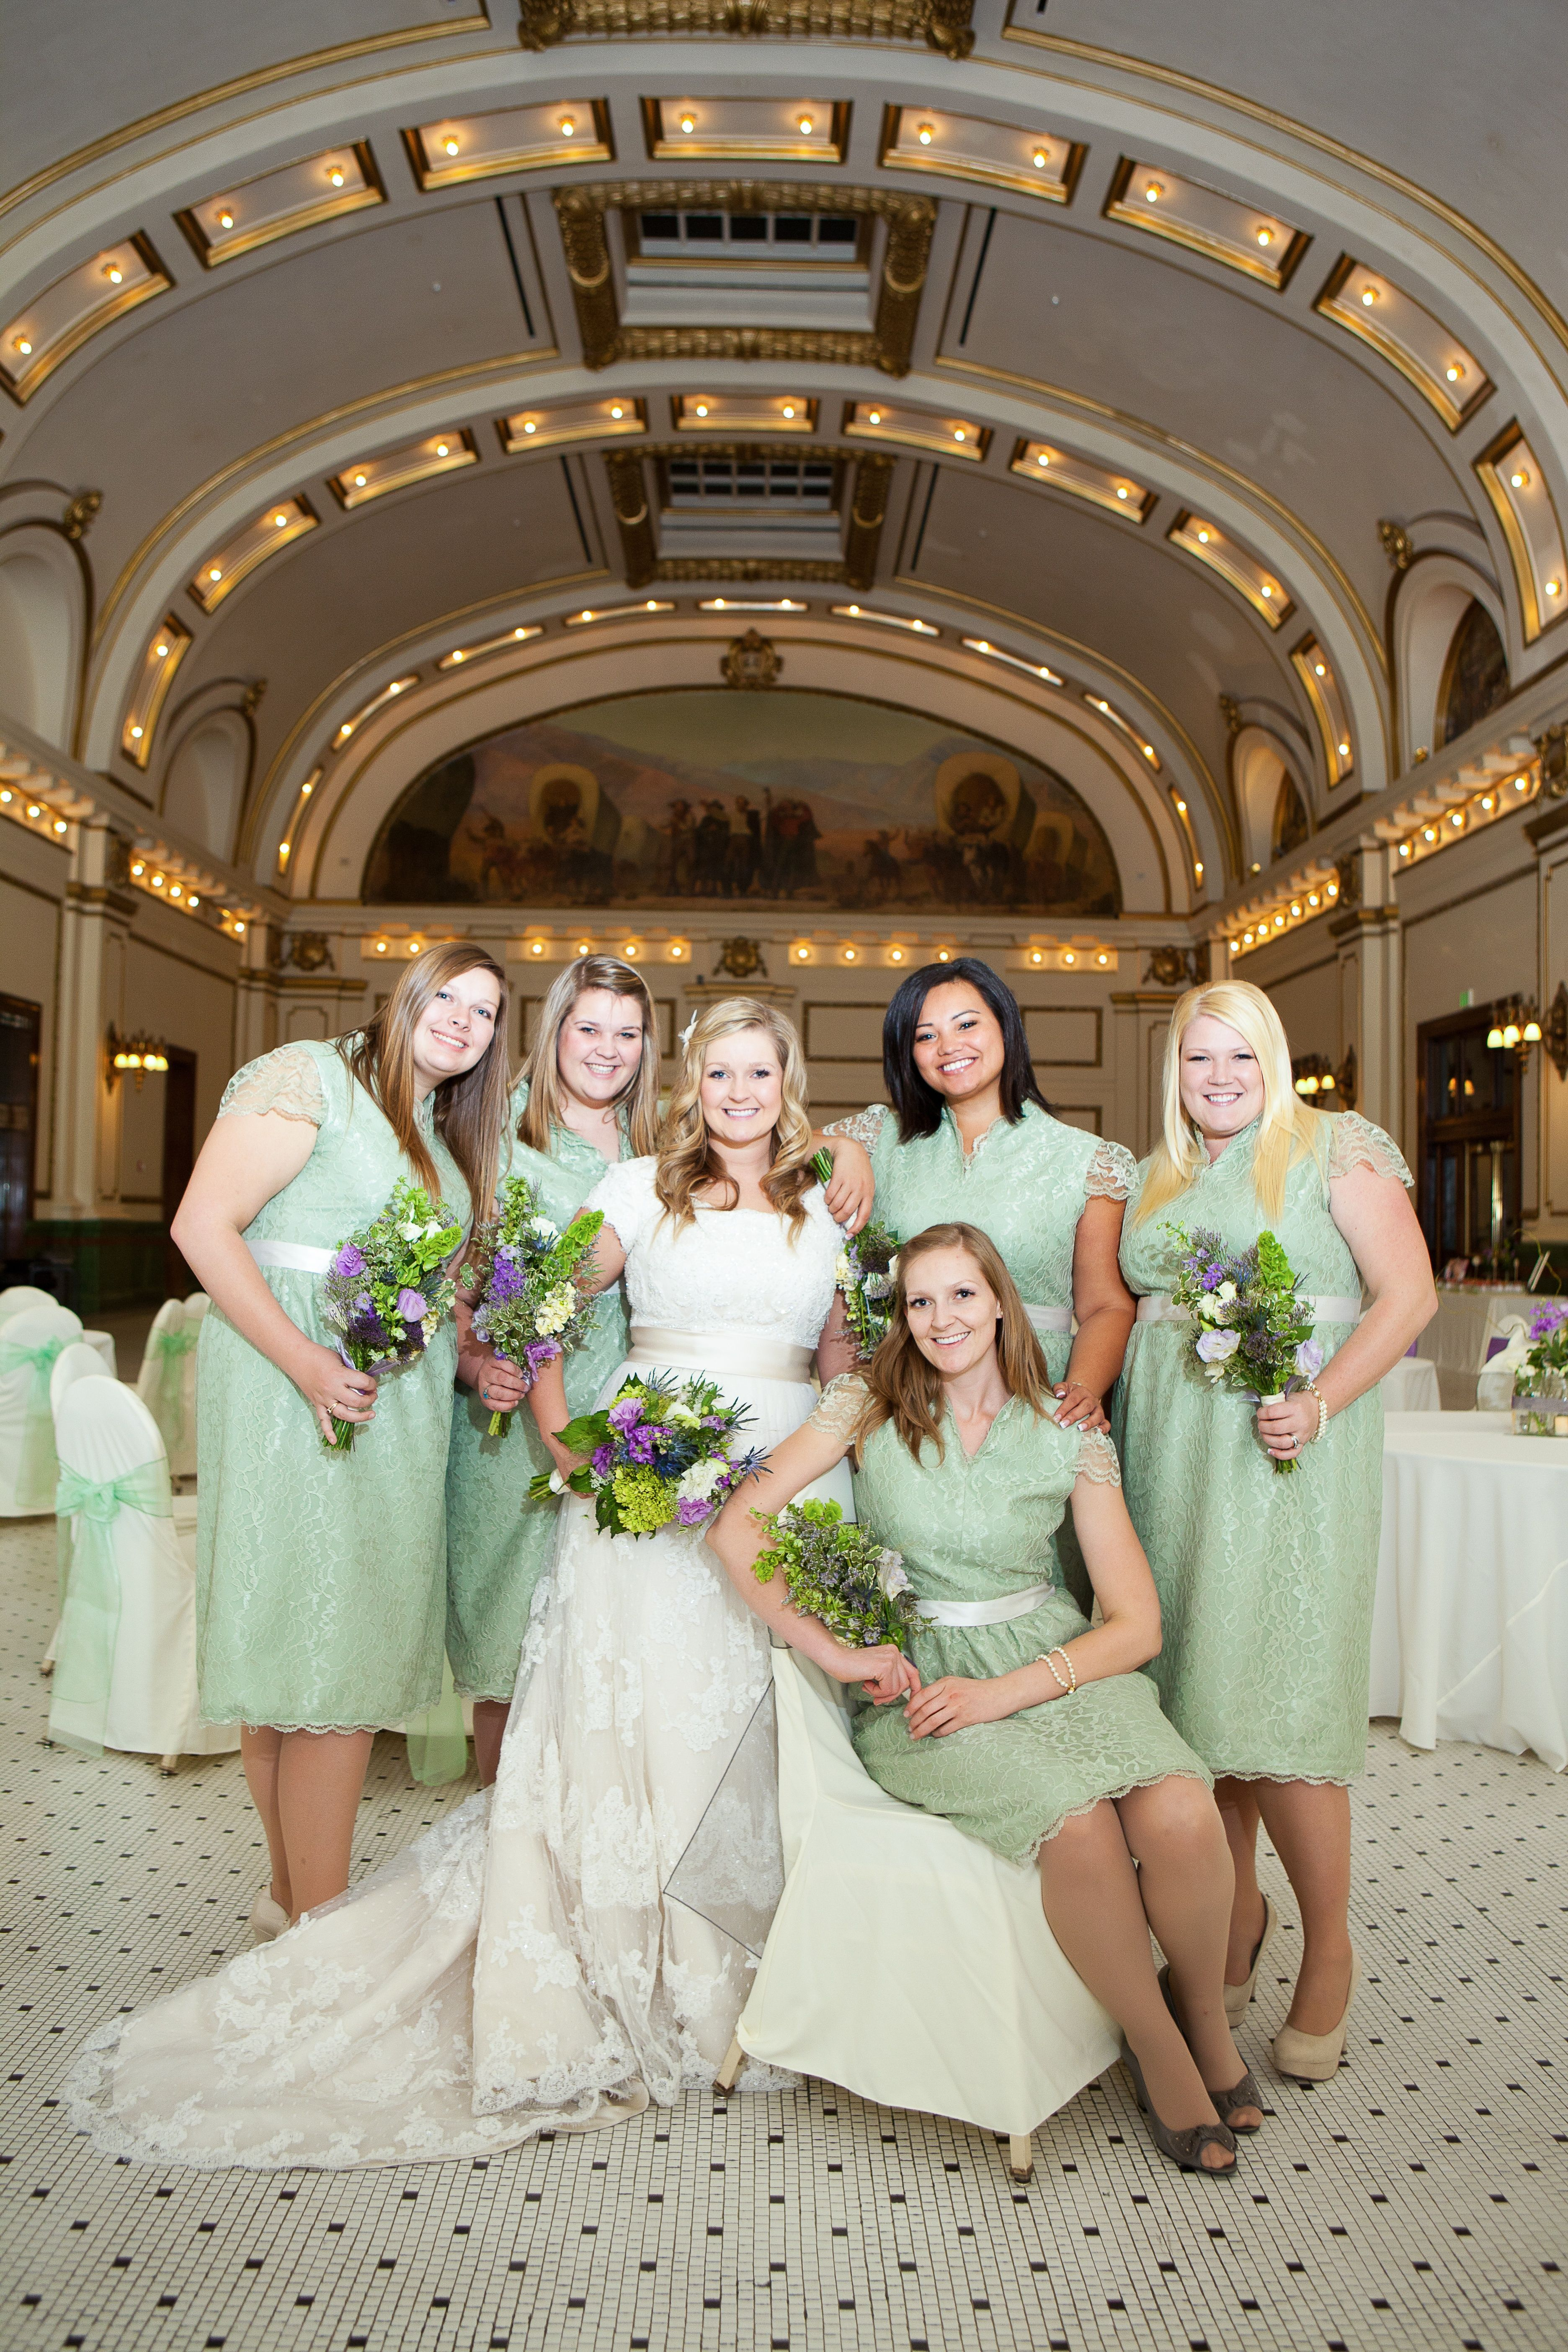 Sage bridesmaid dresses becky ravenberg theknot sage bridesmaid dresses becky ravenberg theknot ombrellifo Choice Image